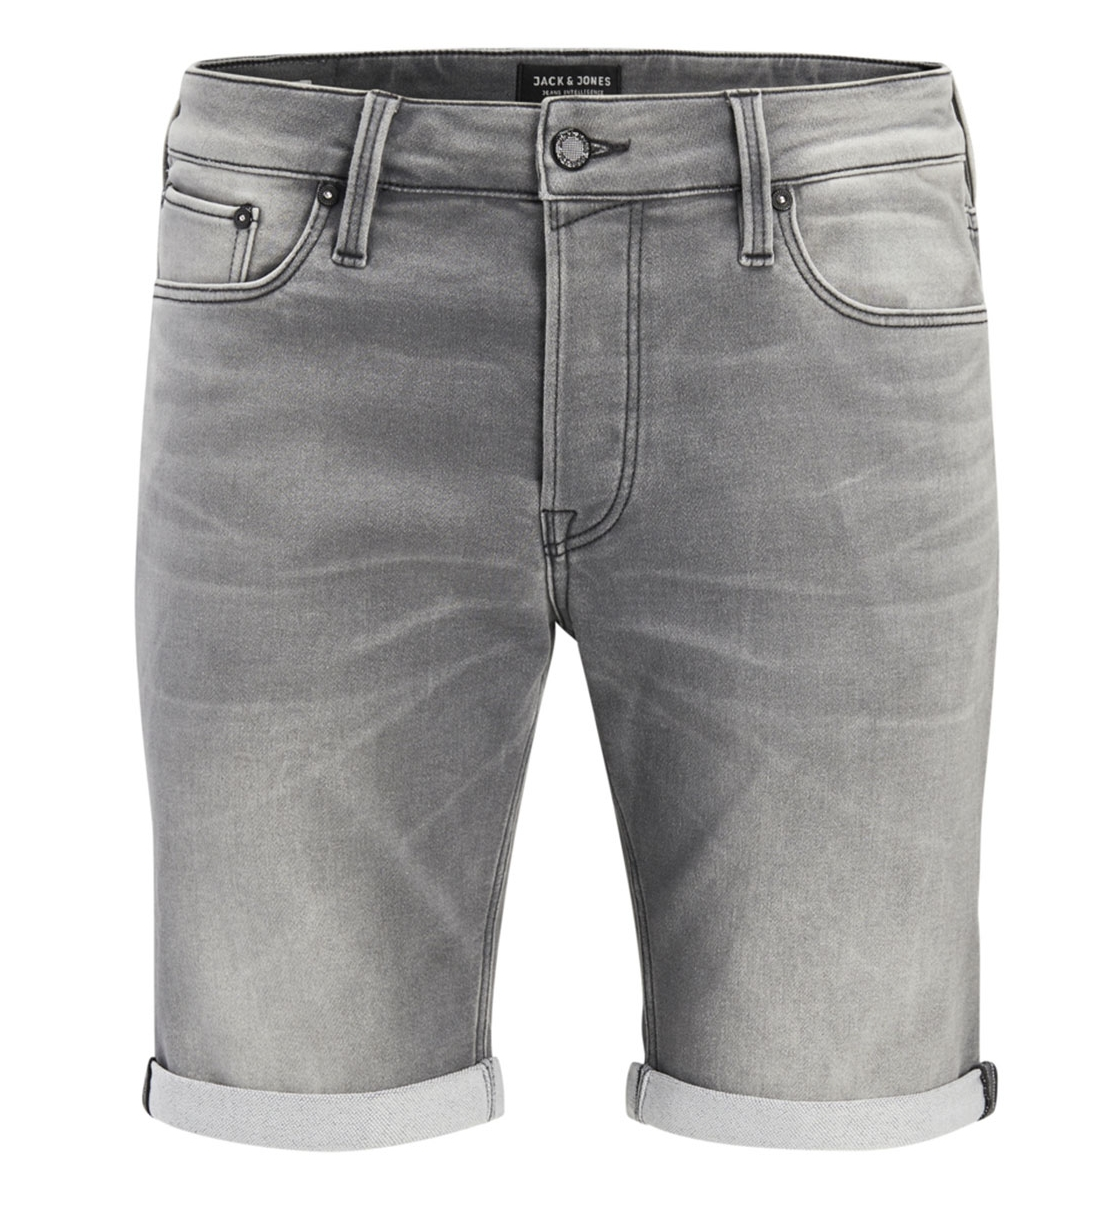 Jack & Jones Ss19 Jjirick Jjicon Shorts Ge 848 I.K. Sts